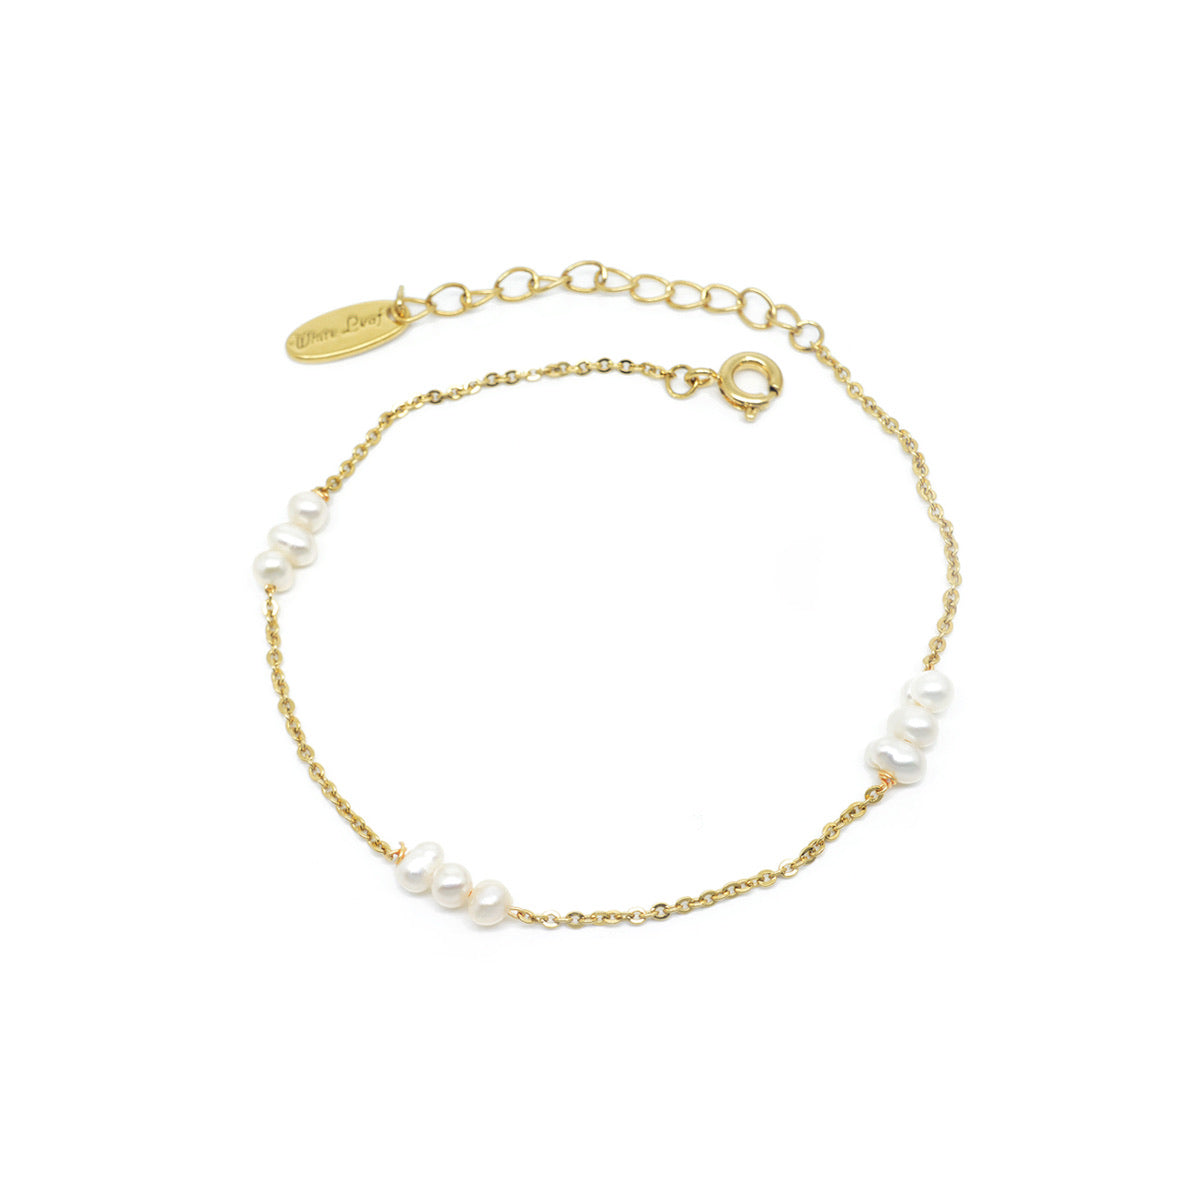 Fine pearl and gold bracelet with fresh water pearls